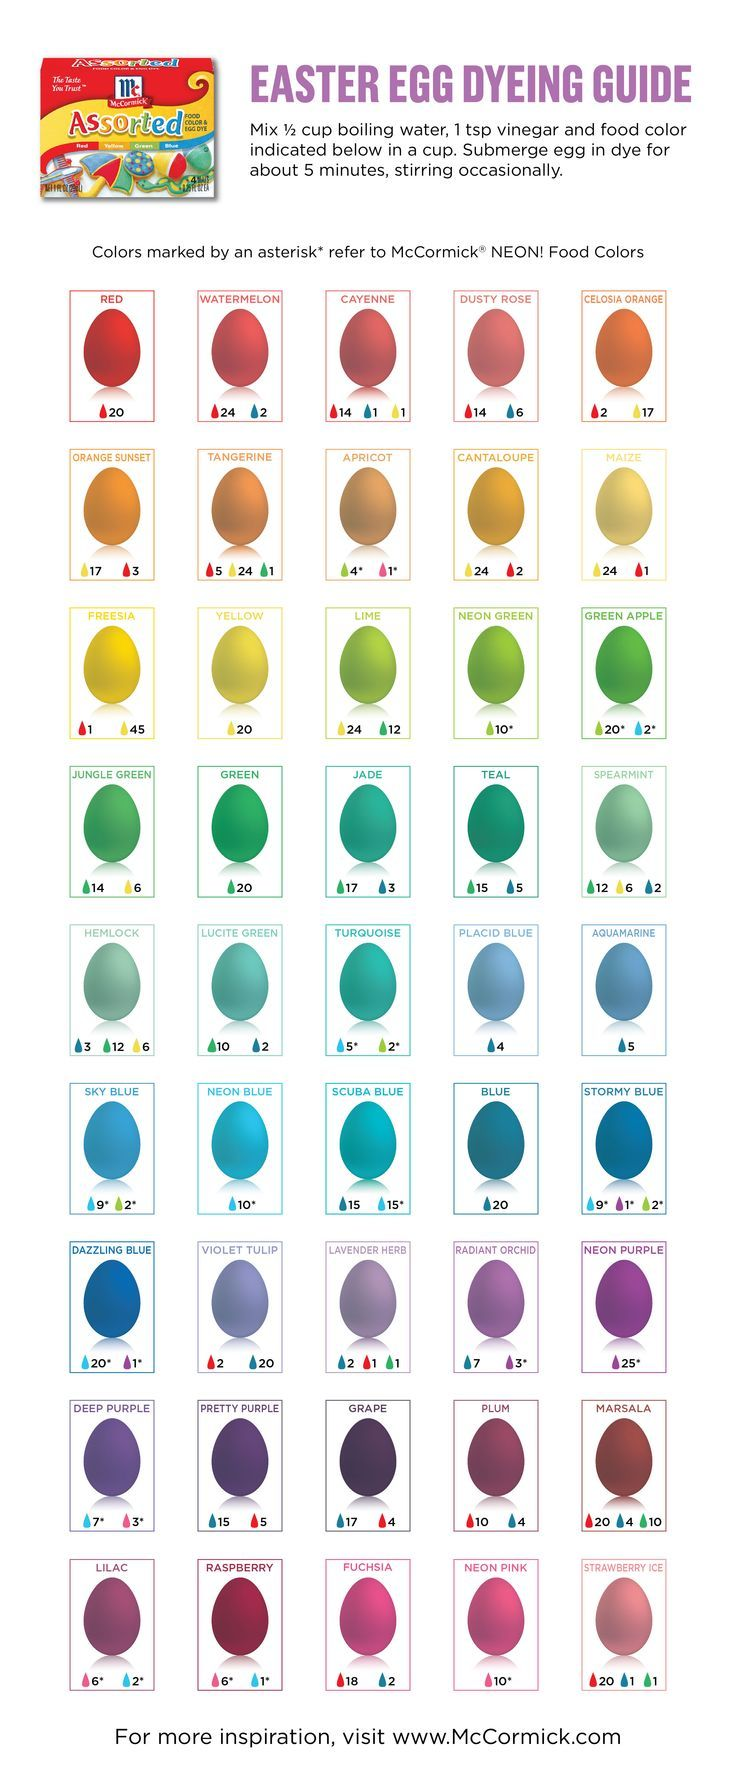 Boring Easter eggs be gone! Use this handy guide to dye eggs this Easter.